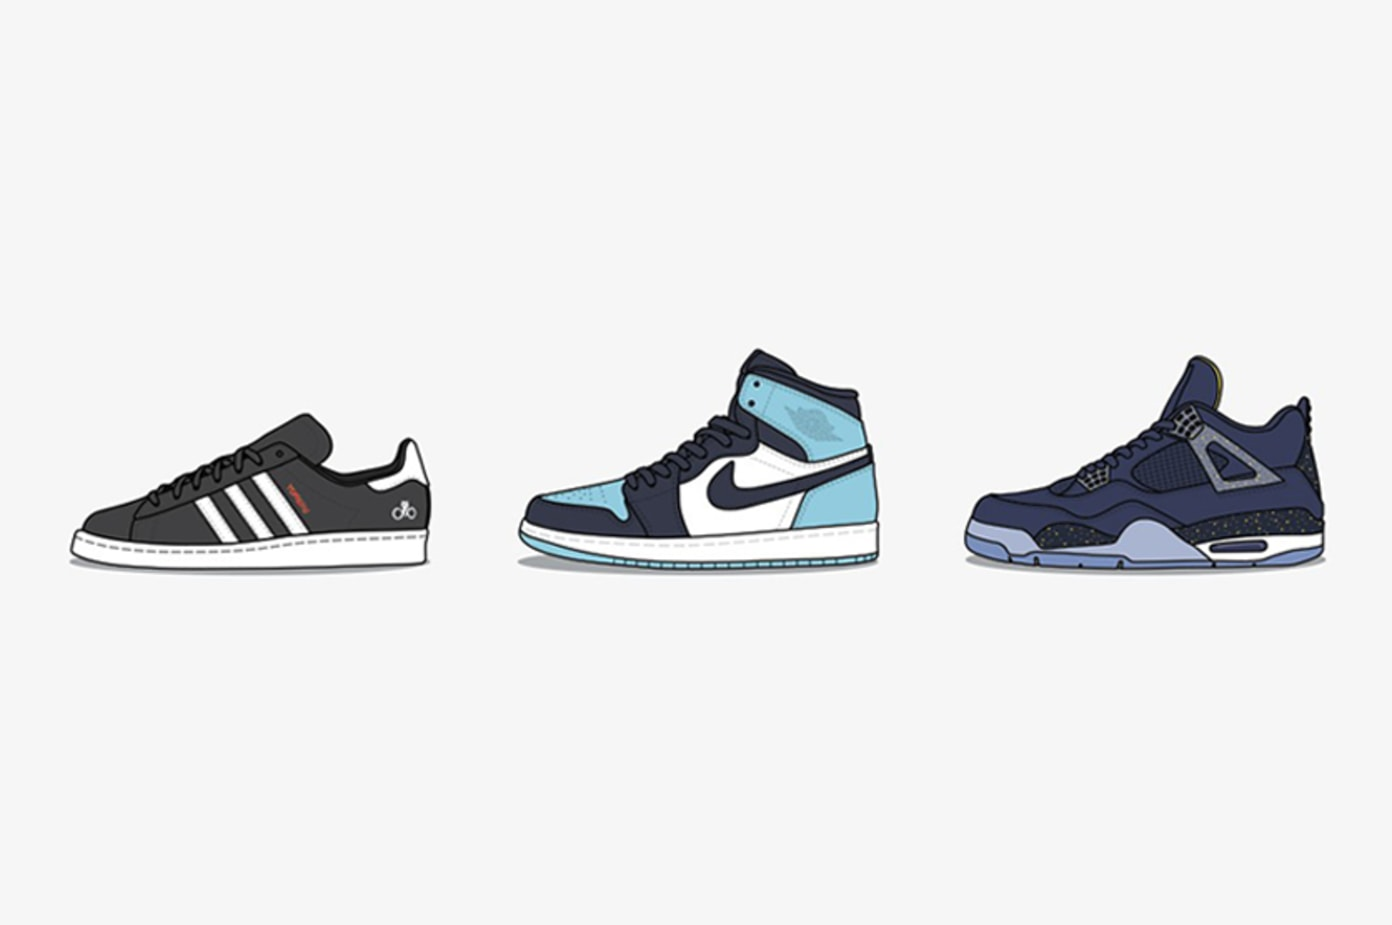 The Most Valuable Sneakers of 2019 Q1